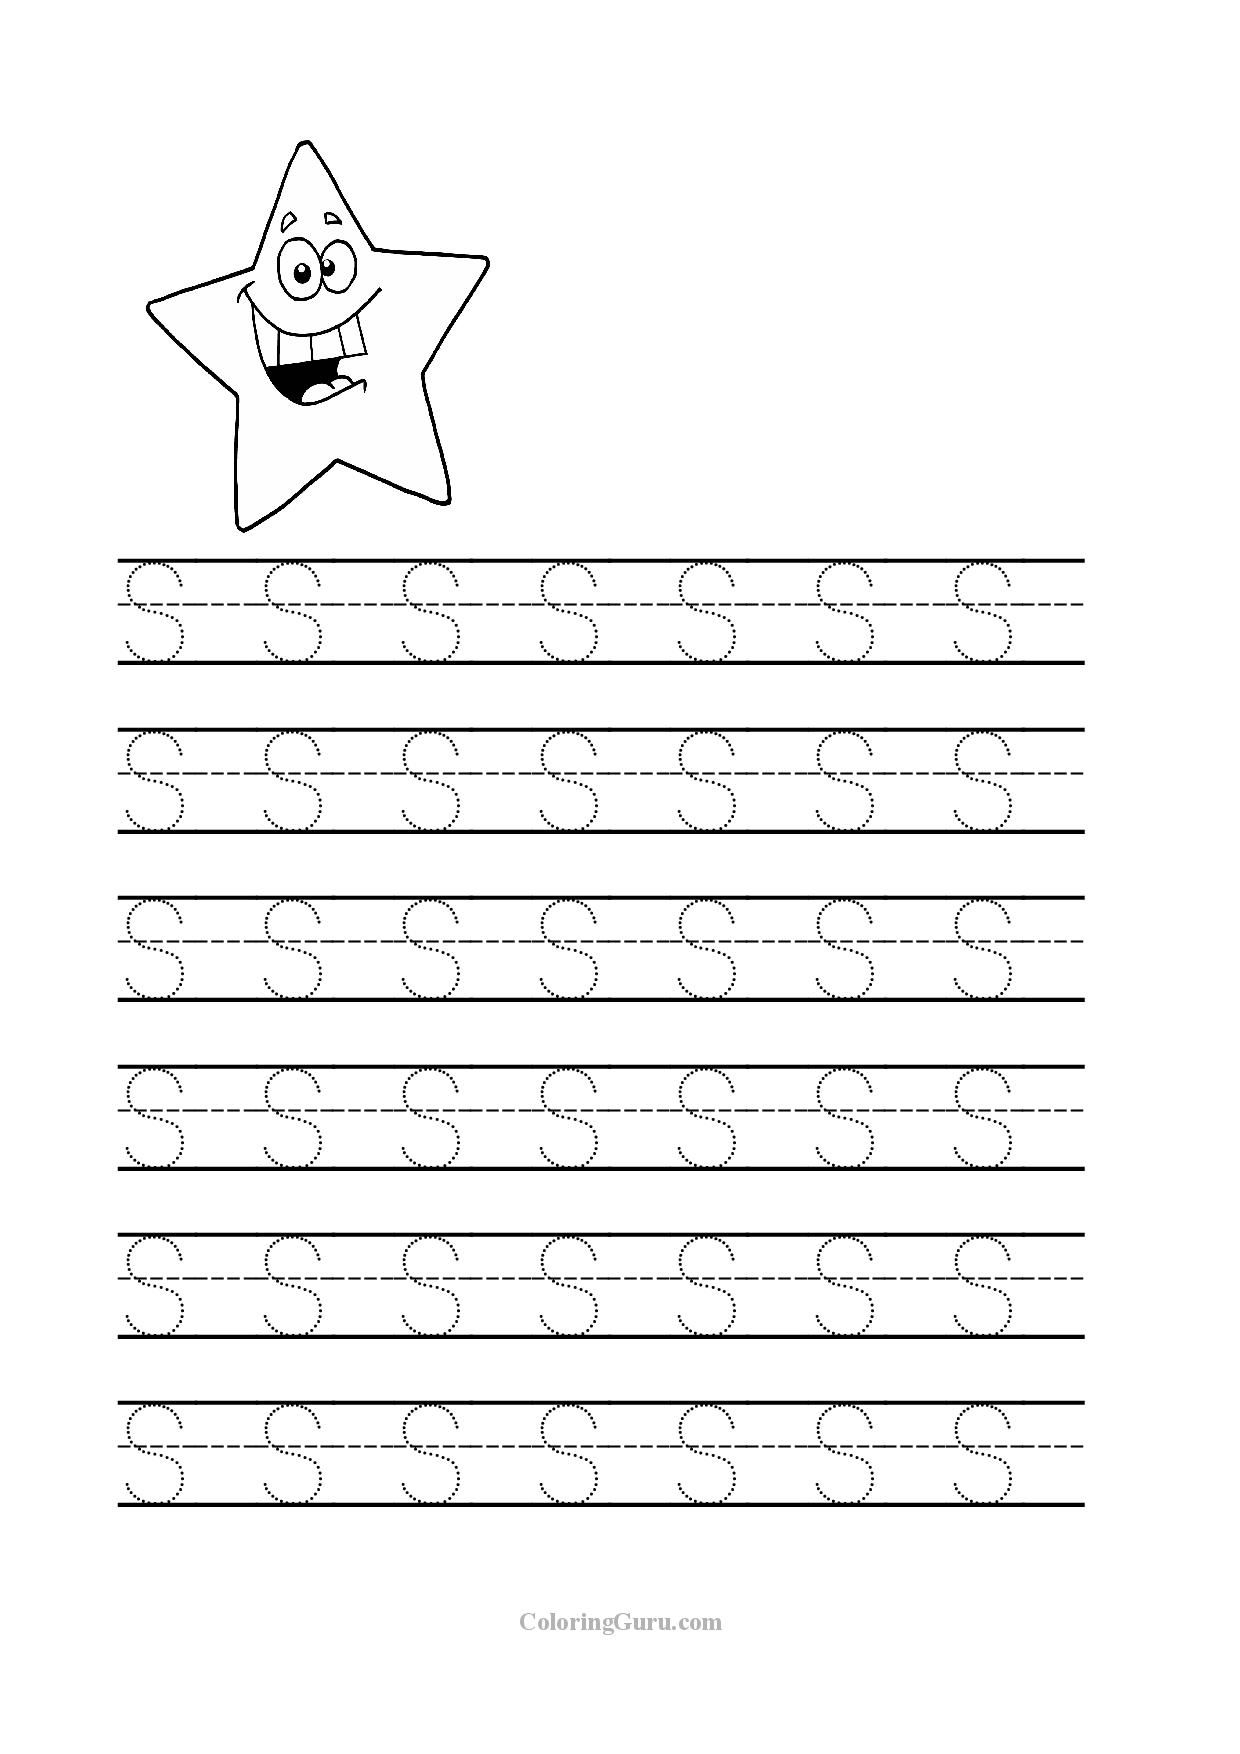 Free Printable Tracing Letter S Worksheets For Preschool for Tracing Letters Of The Alphabet For Preschoolers